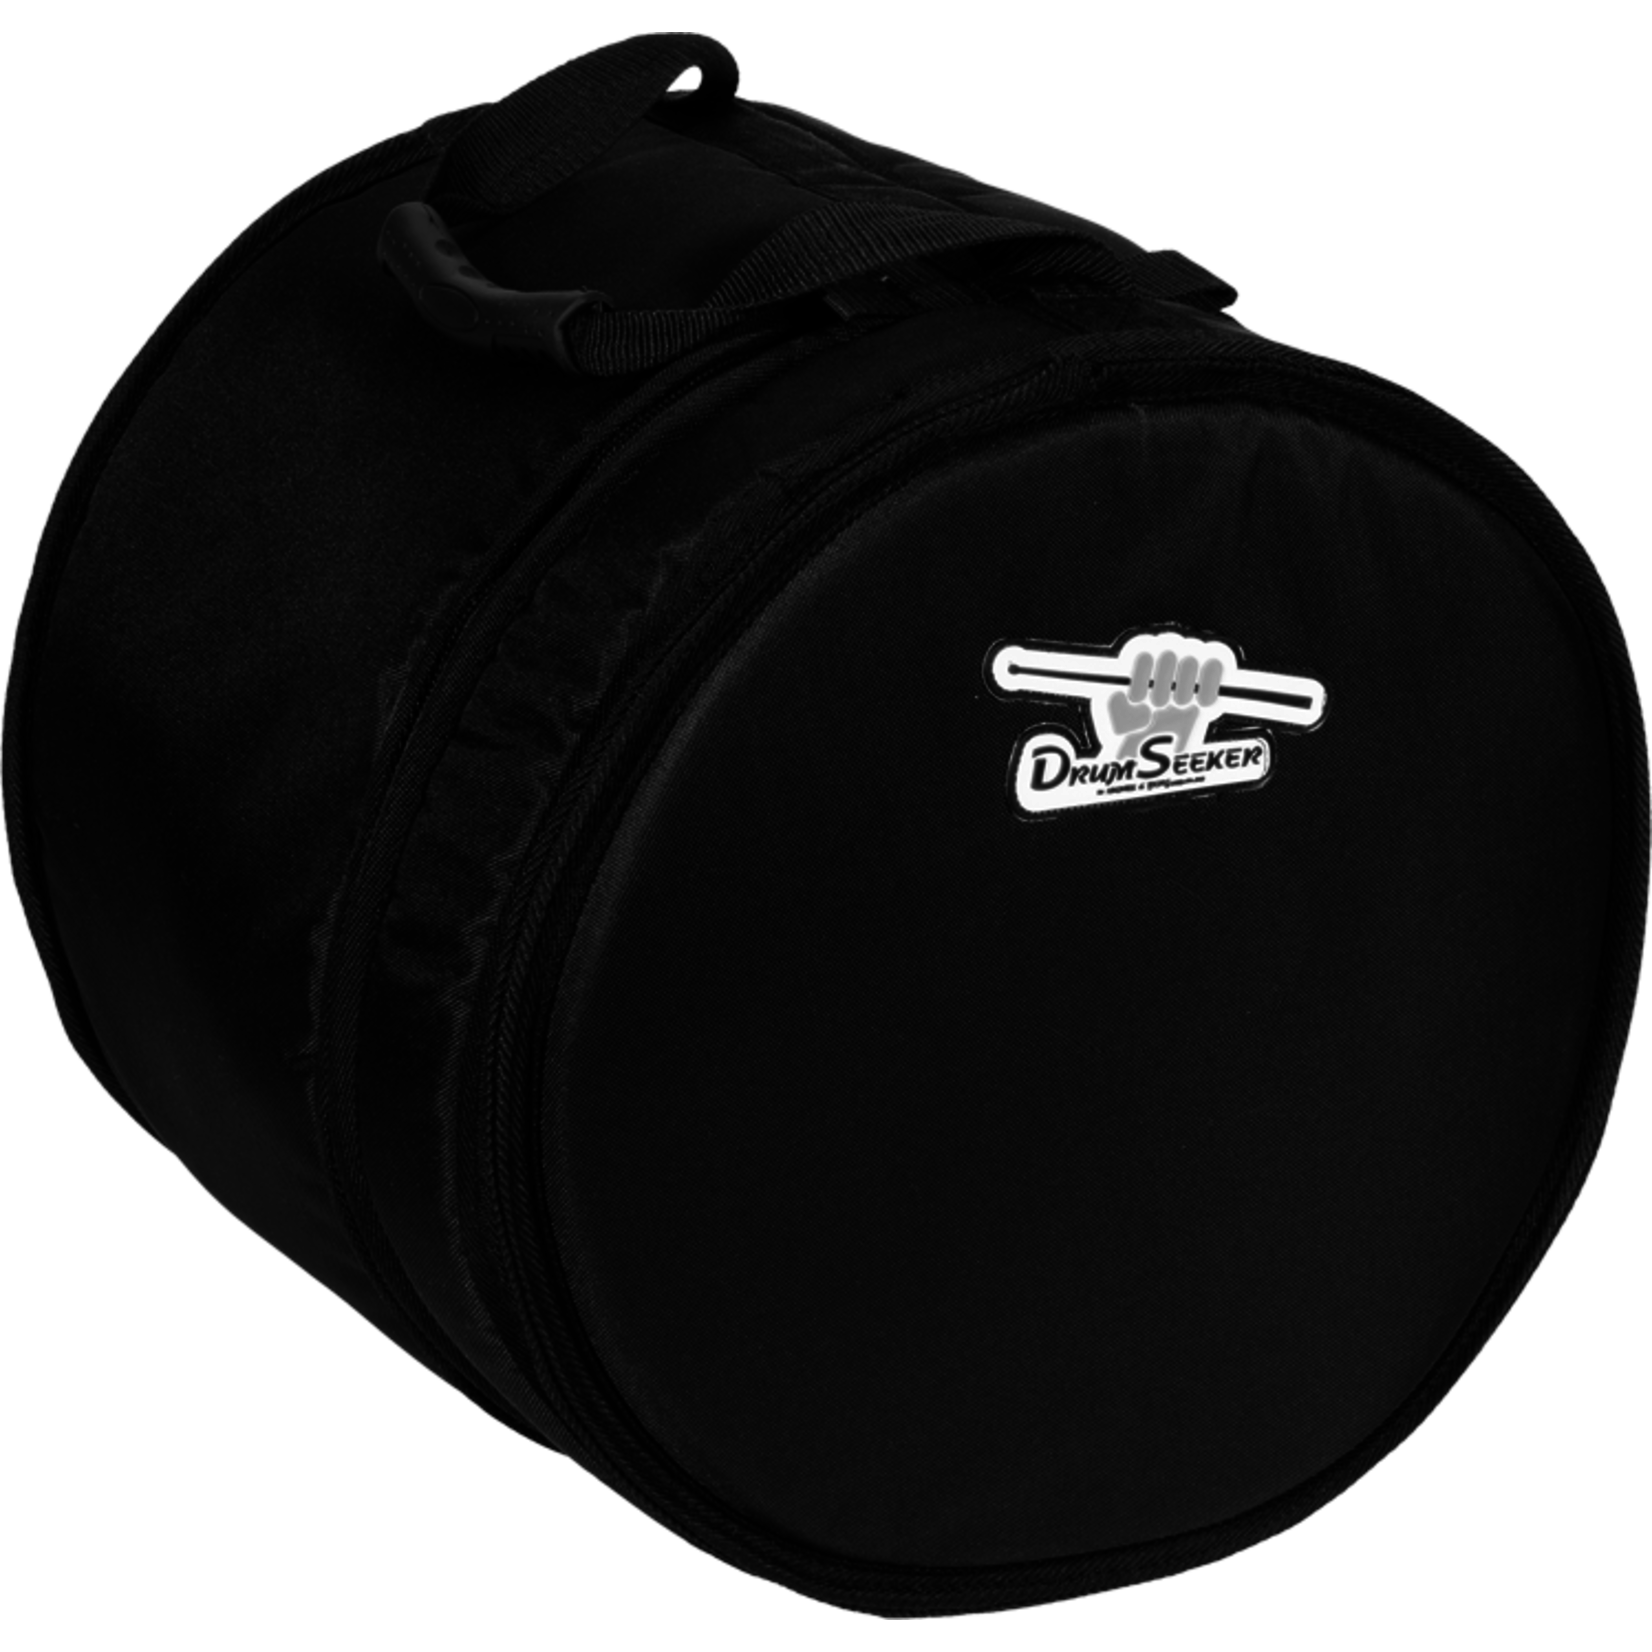 Humes and Berg Humes and Berg Drum Seeker 7x13 Bag